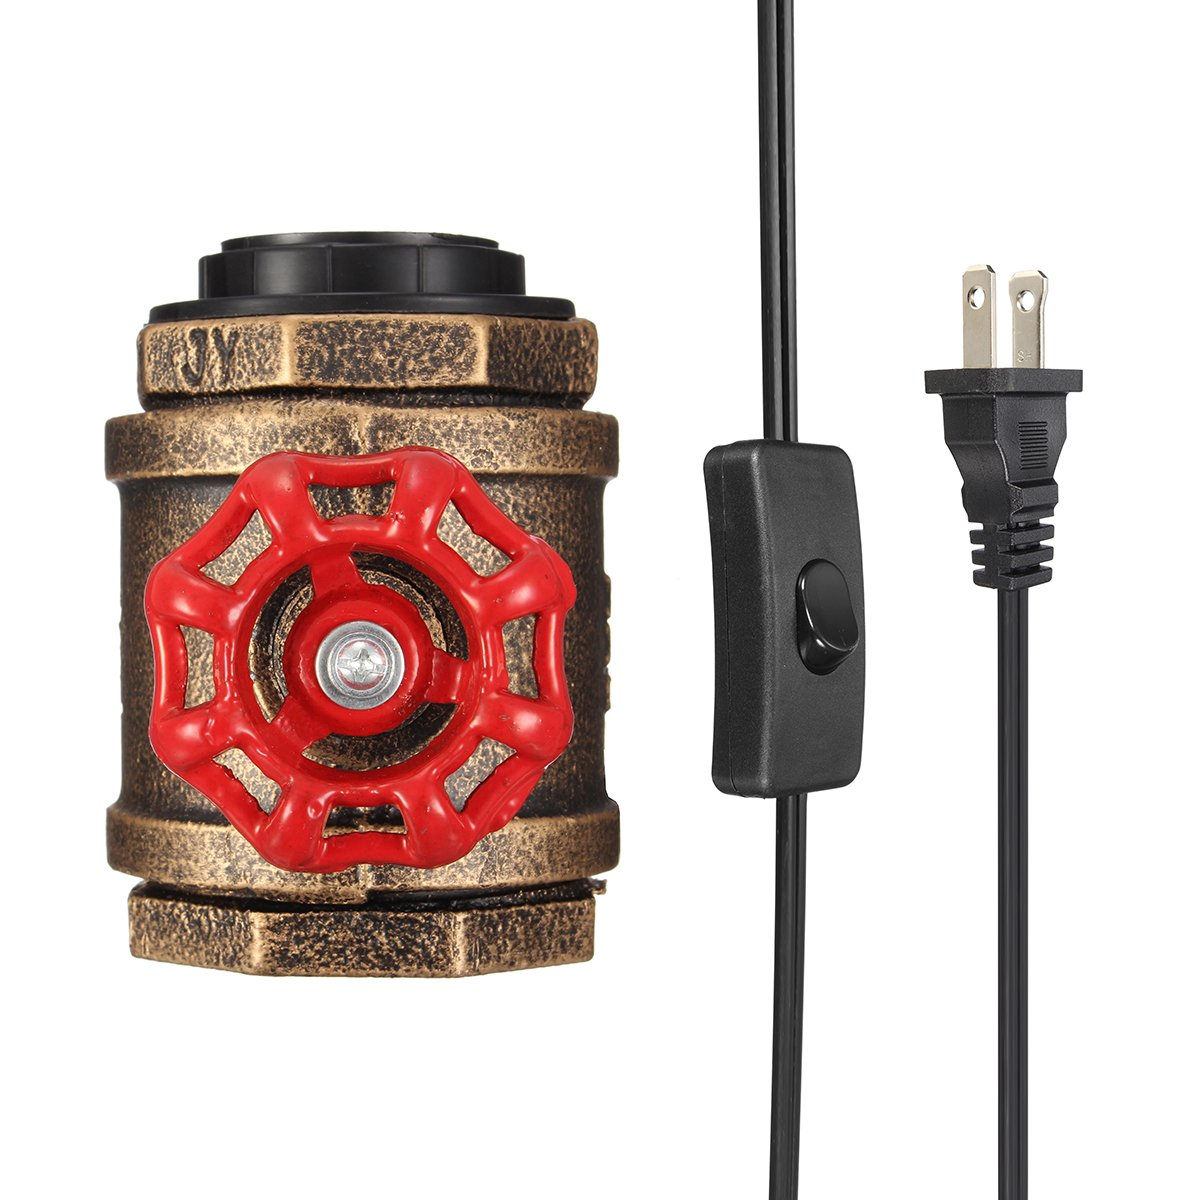 Elfeland Vintage Table Lamp with UL Listed Button Switch Cord Steampunk Industrial Desk Light Antique Rustic Water Pipe Light E26/E27 Base Non-Dimmable (Bulb Not Included)